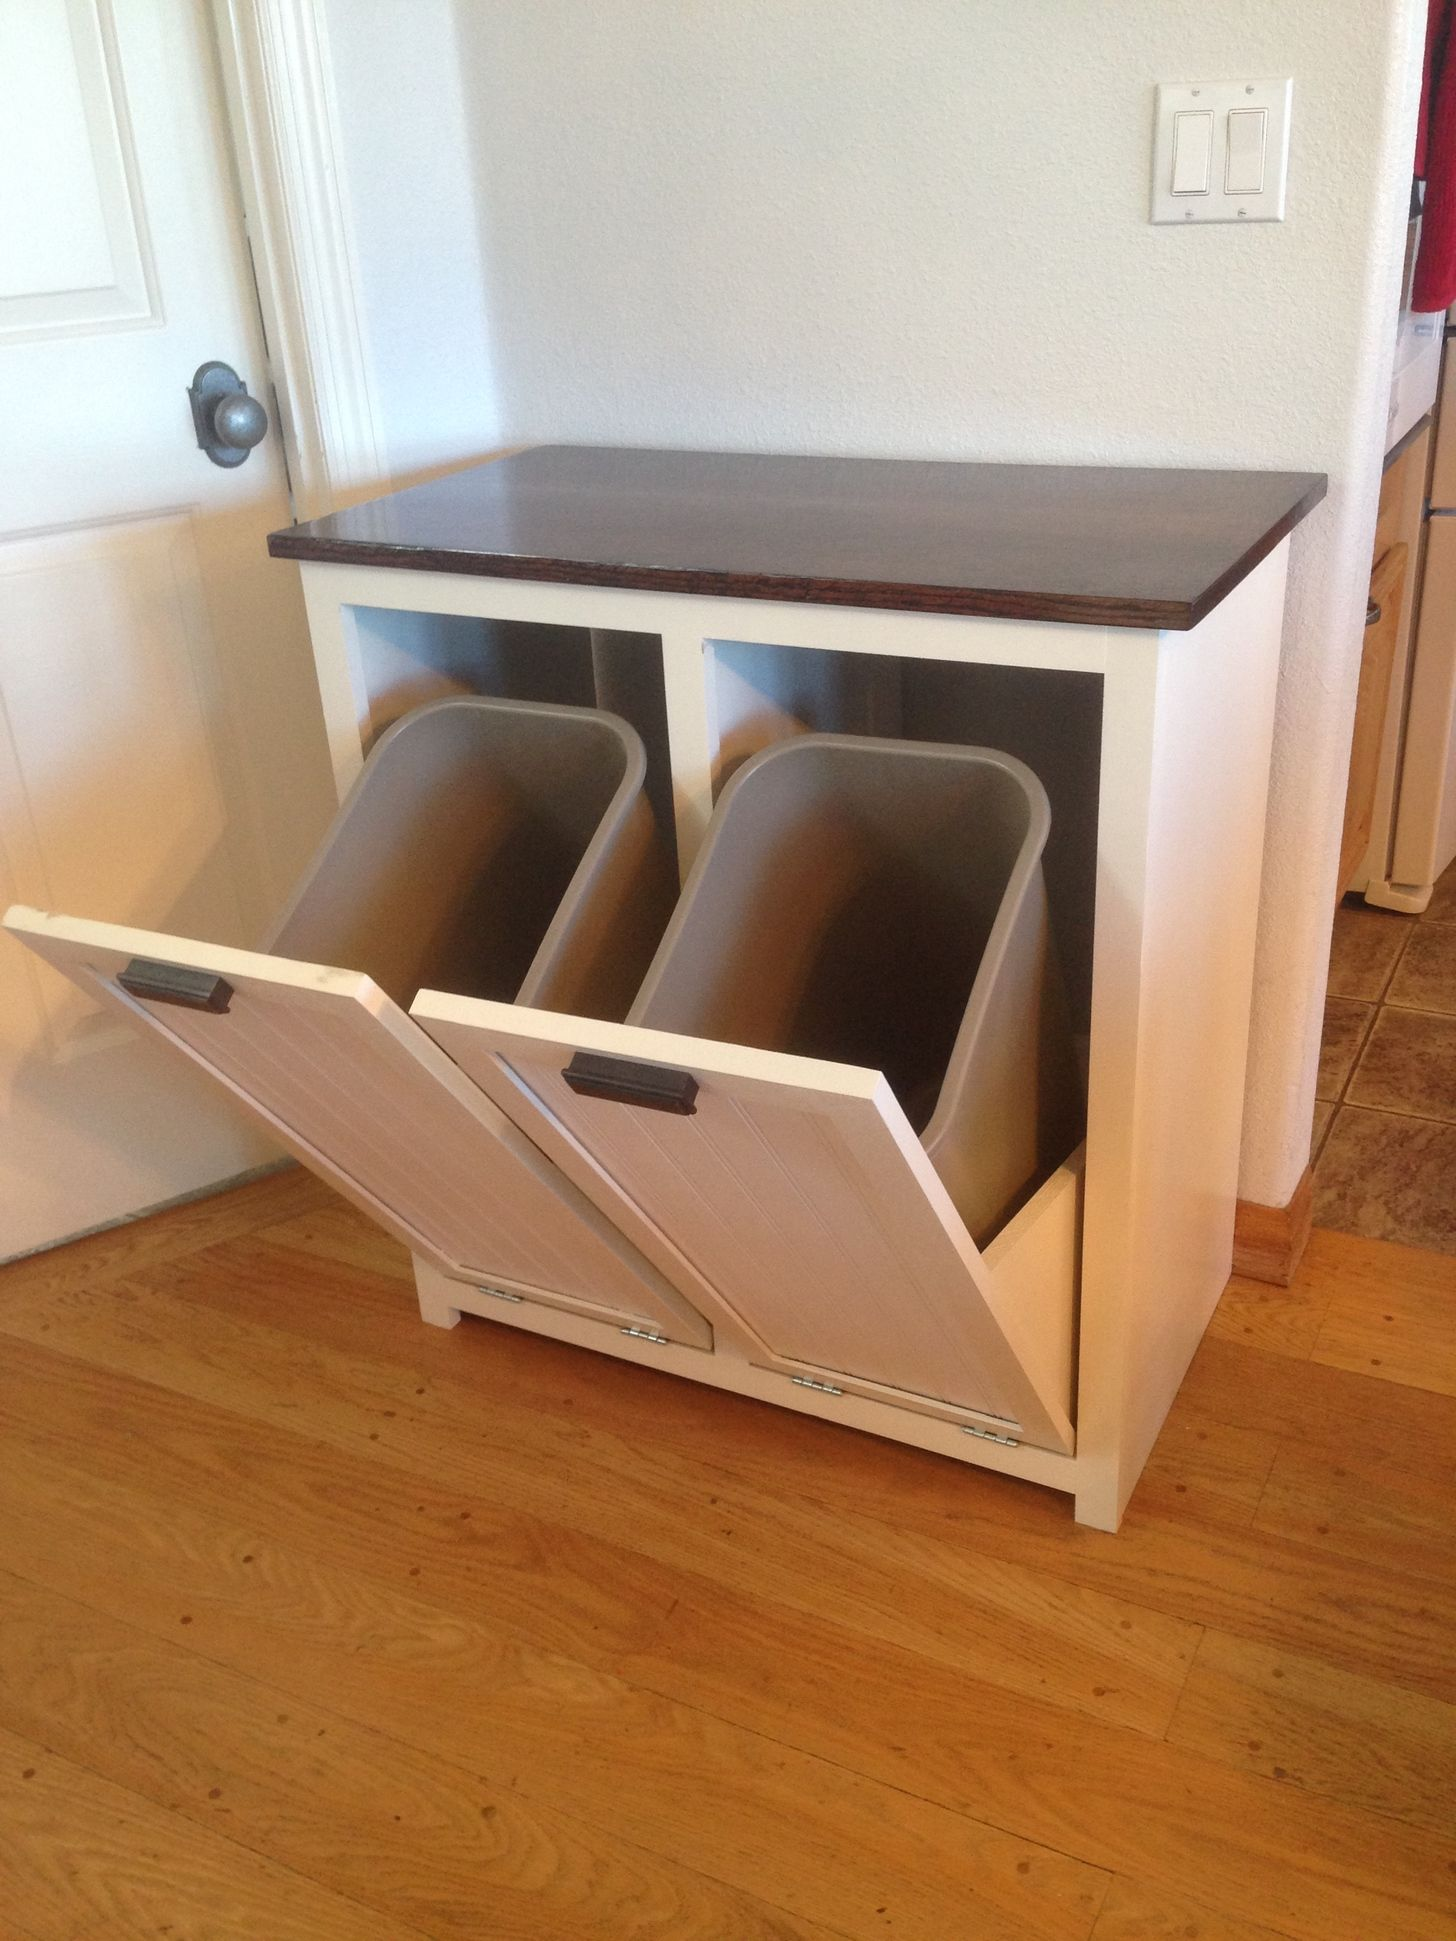 A Tilt Out Garbage And Recycling Cabinet Diy Furniture